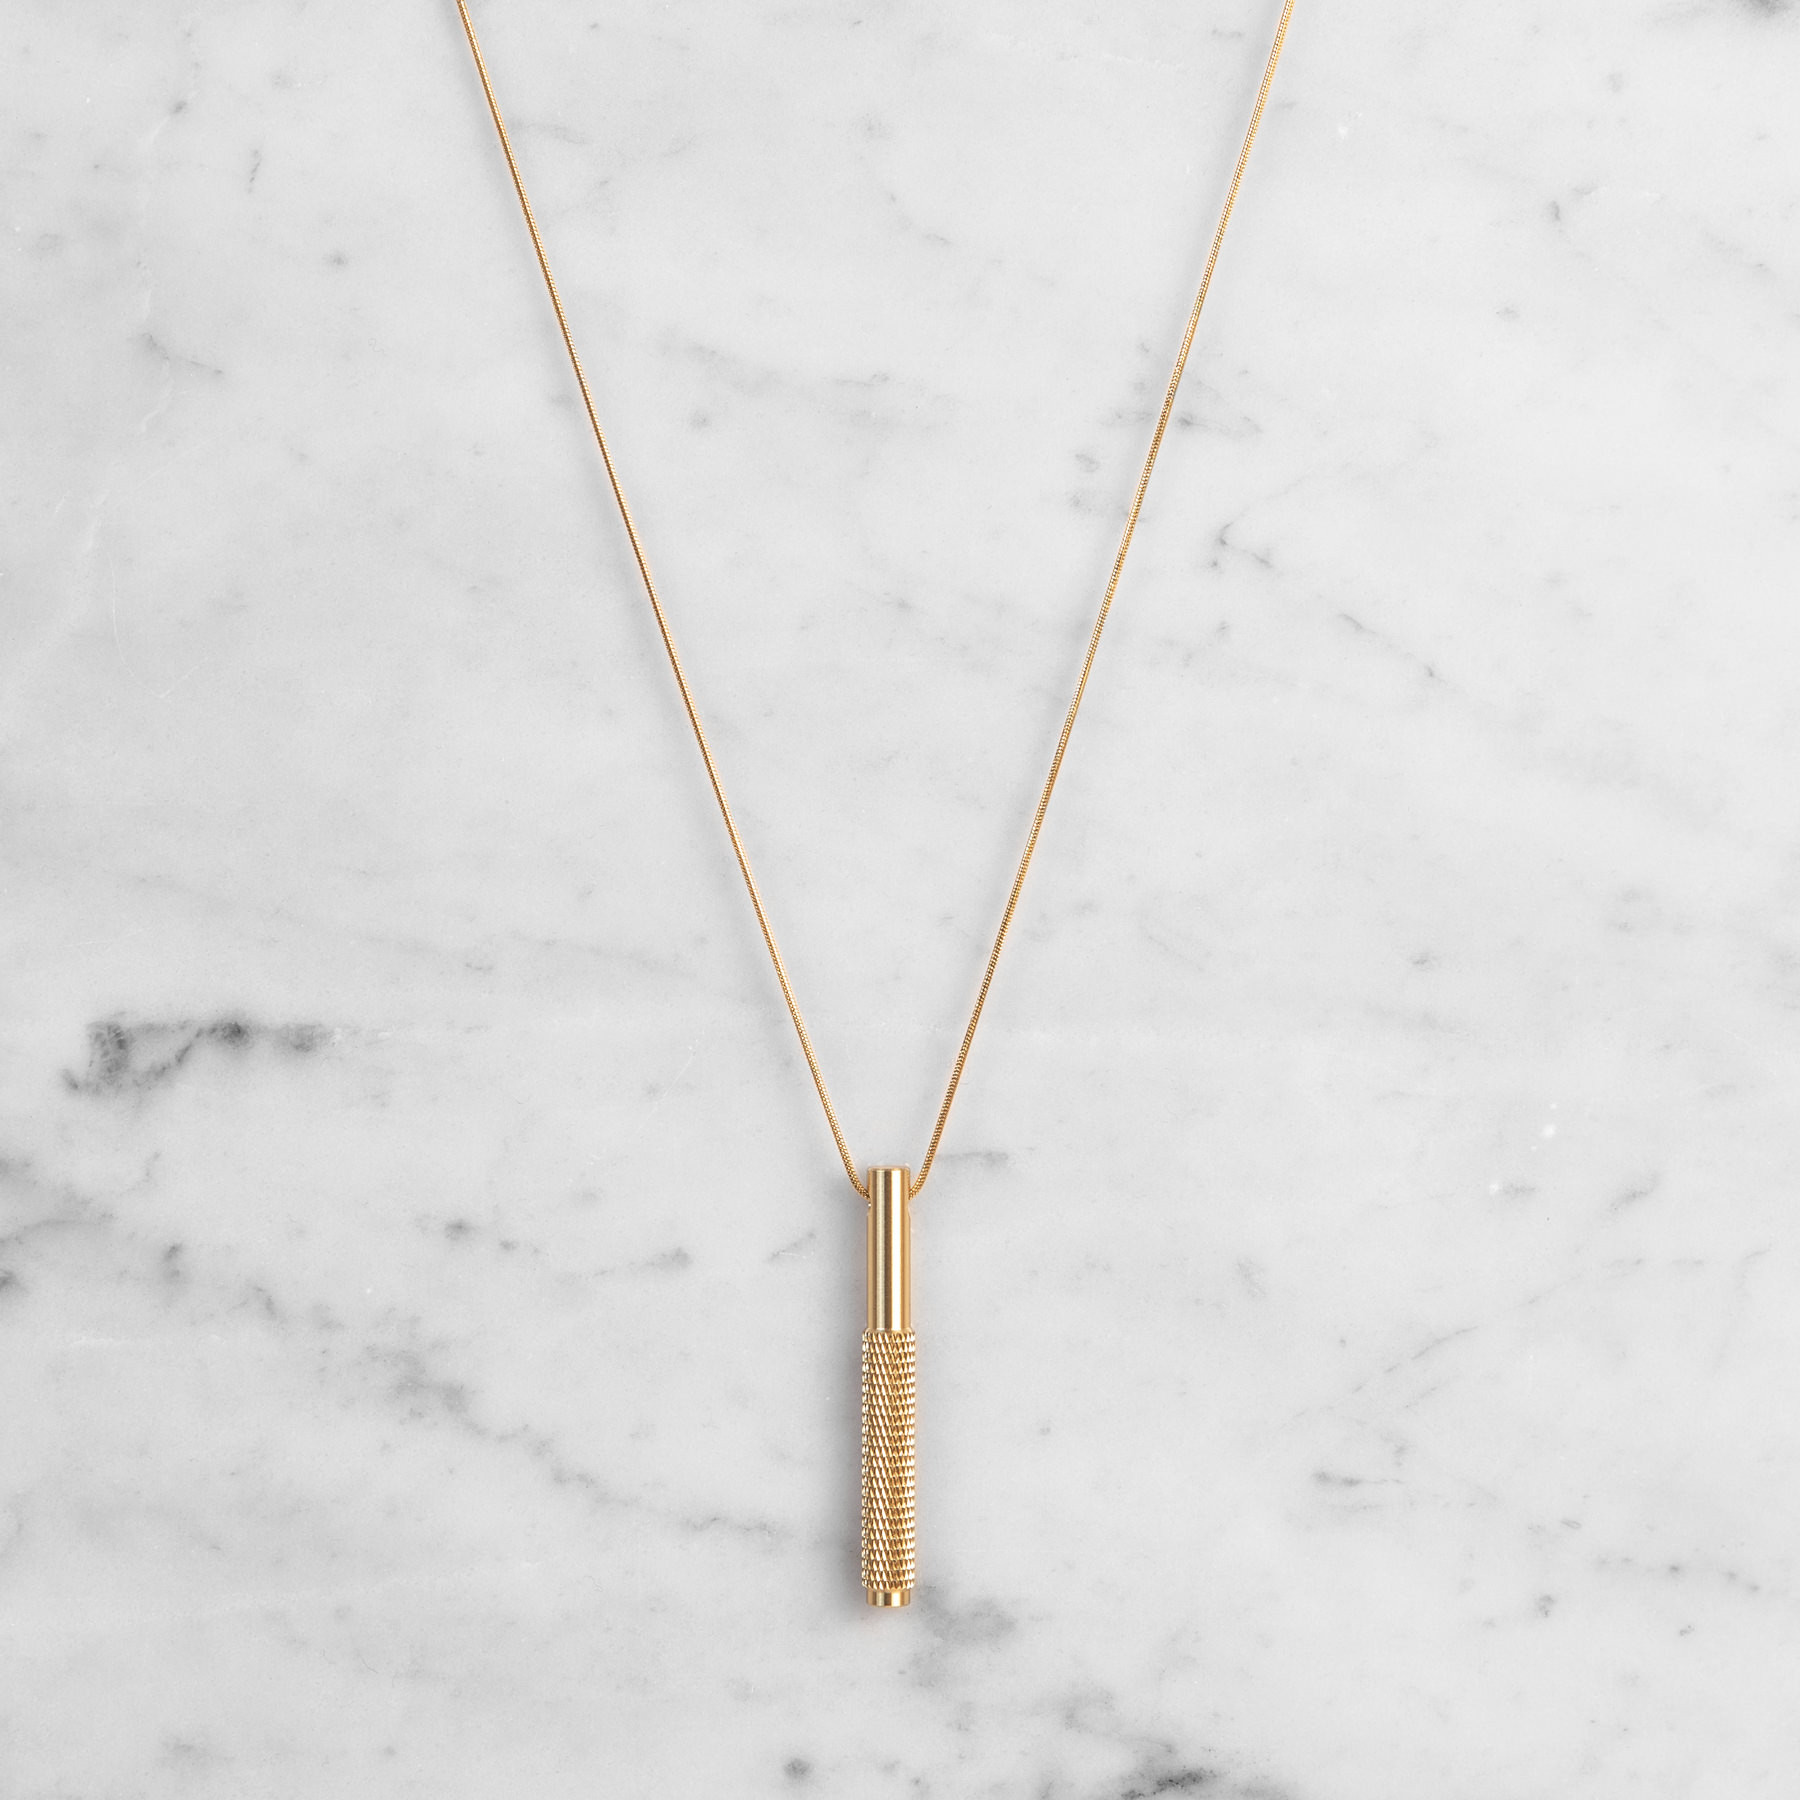 Buster + Punch / Vertical Necklace / Solid brass with knurled detailing